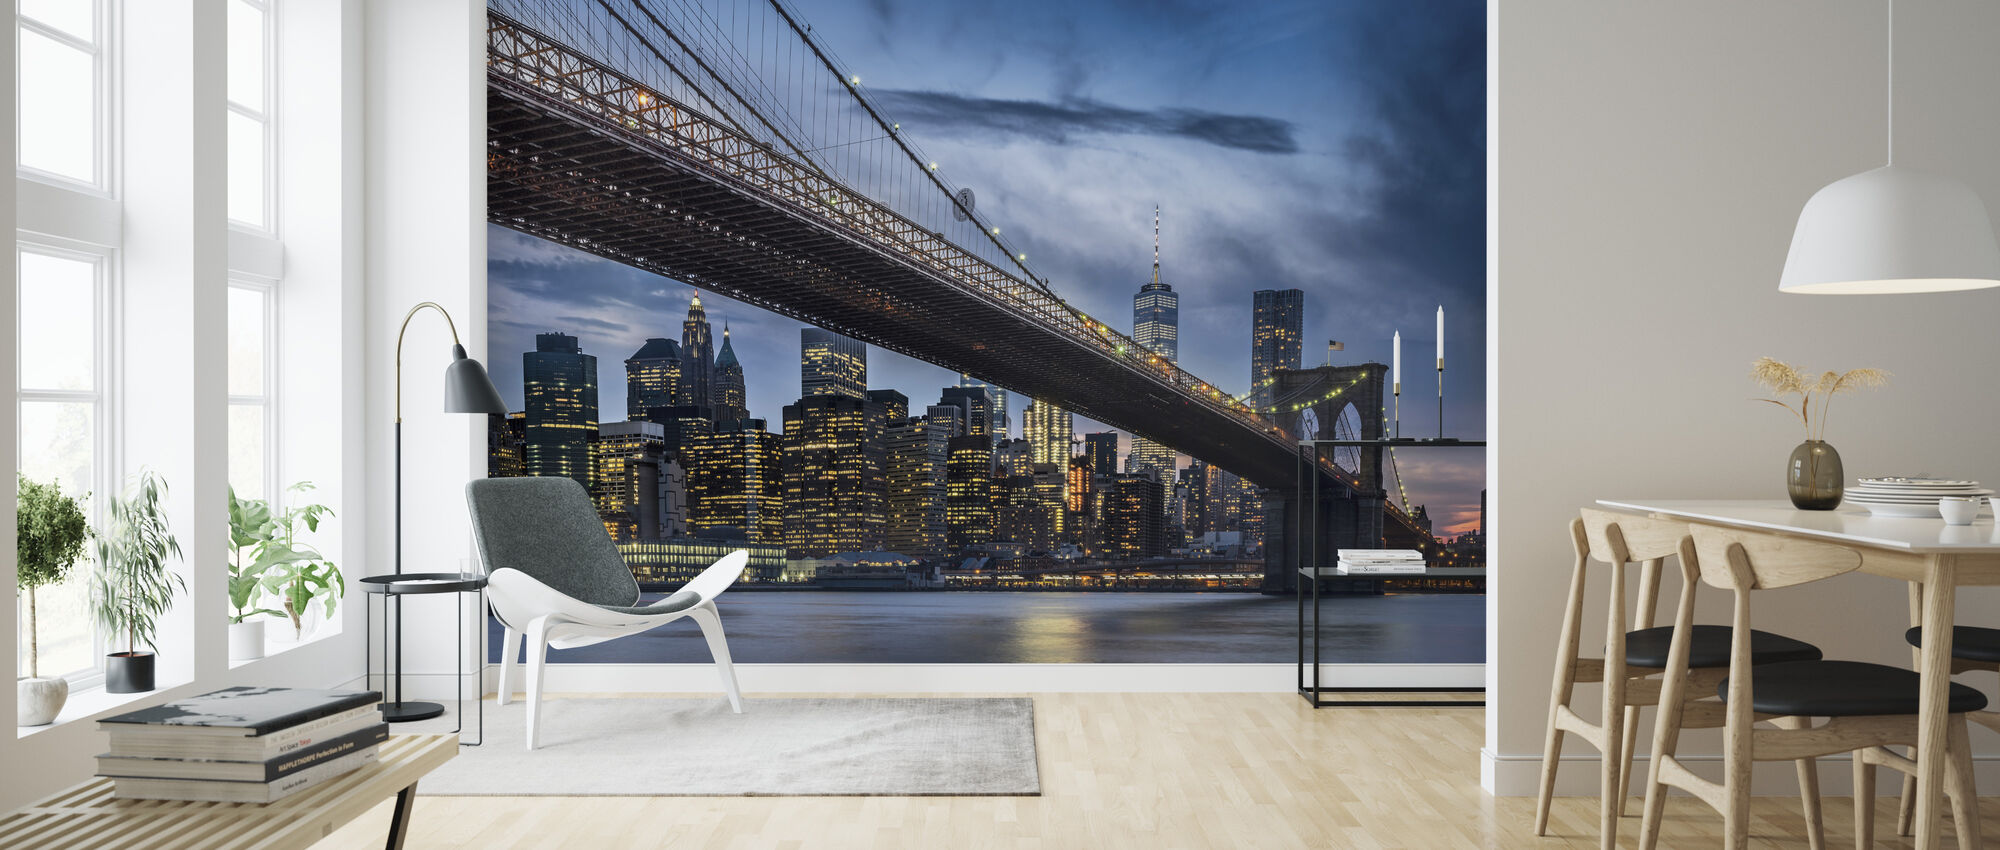 Manhattan from Dumbo - Wallpaper - Living Room